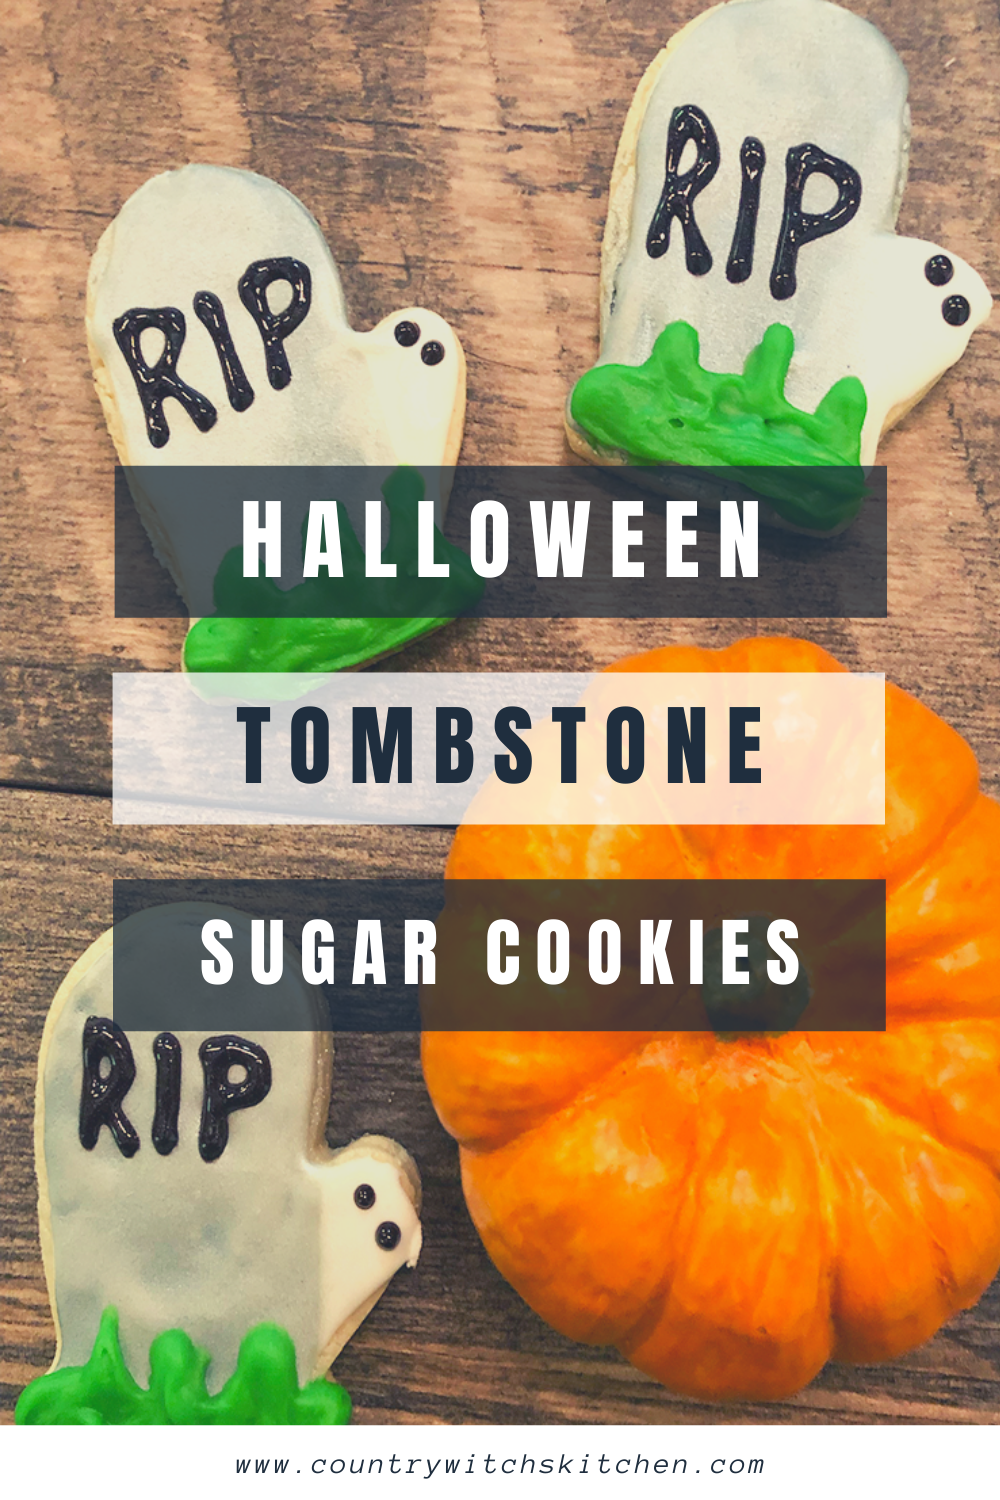 This easy iced sugar cookie recipe is the perfect Halloween snack for all ages. #Halloweencookie #sugarcookierecipe #fallbaking